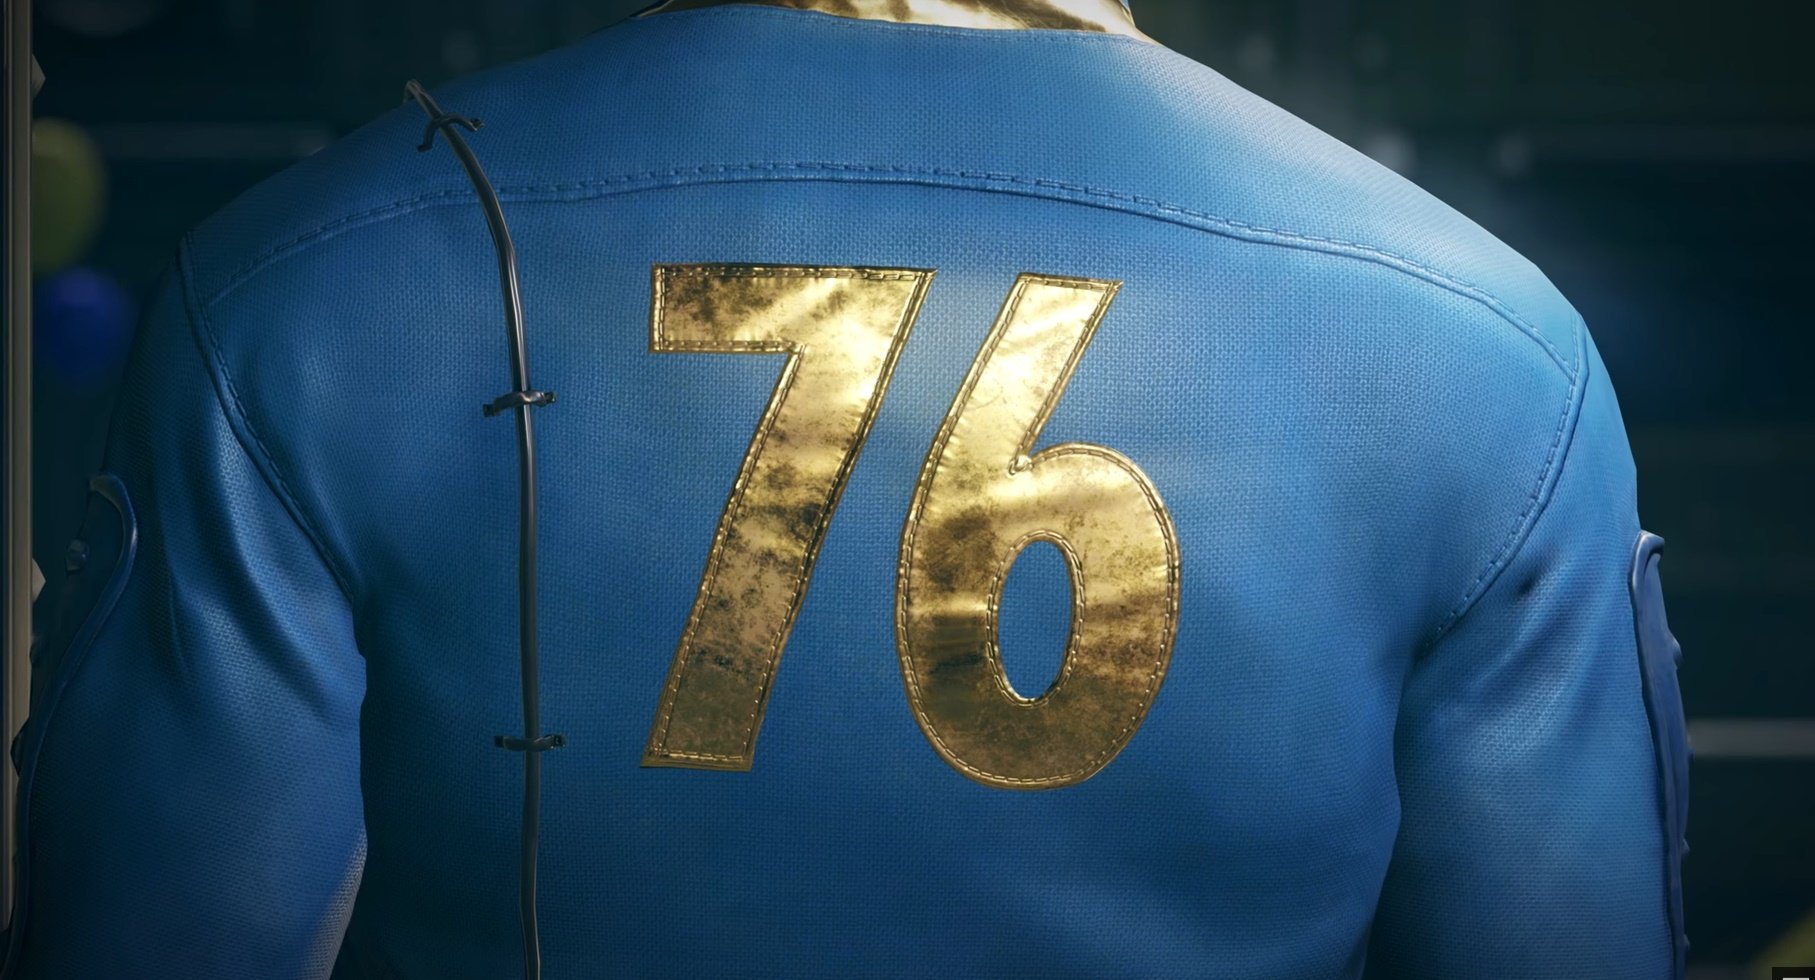 (Update) Bethesda announce Fallout 76 with new teaser trailer screenshot